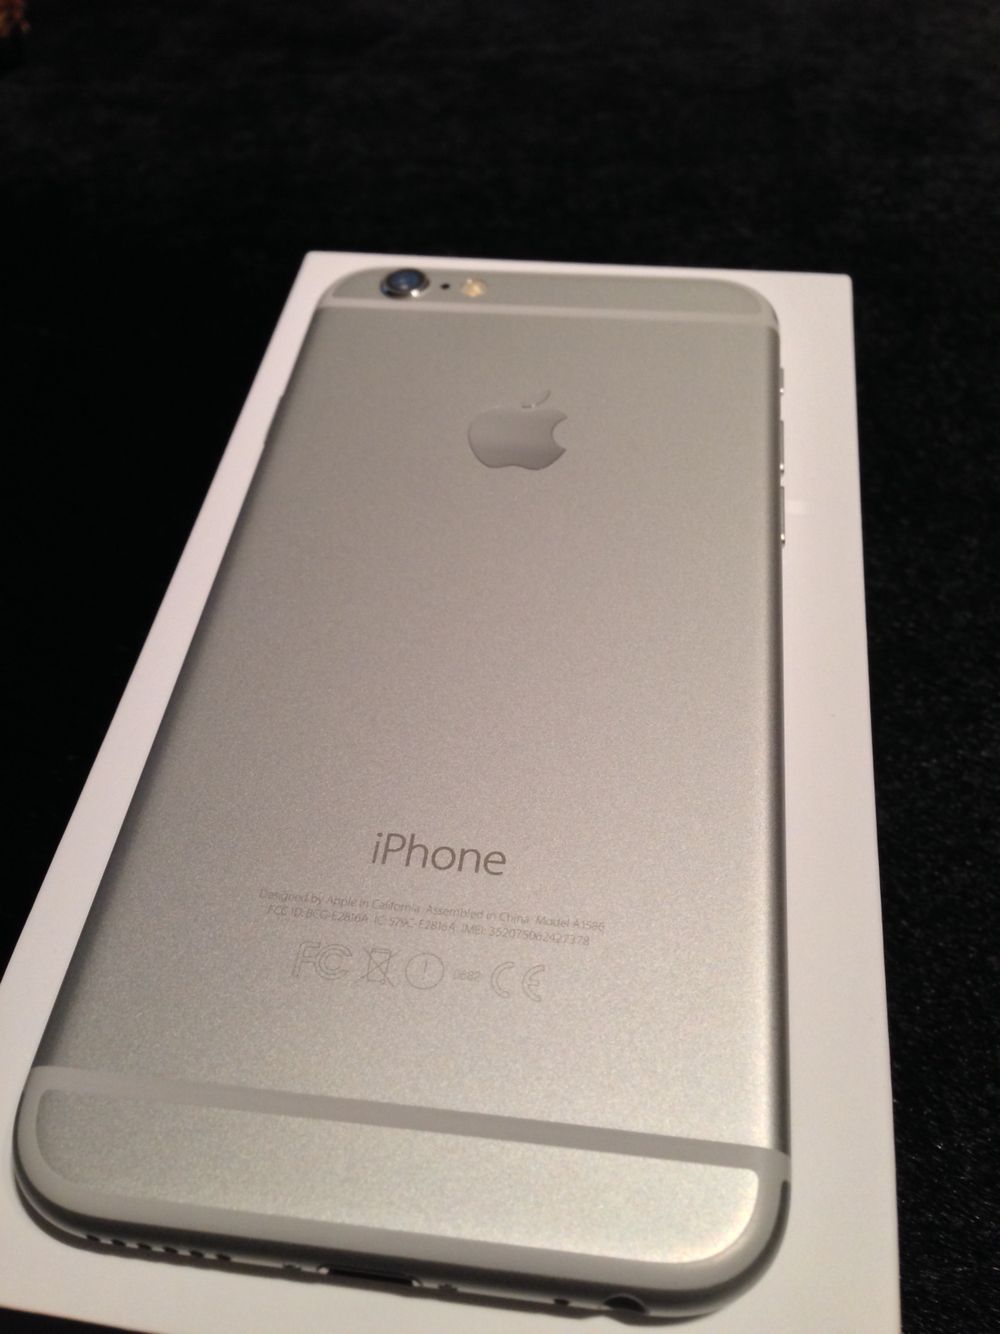 My new iPhone 6 silver 64 gig freed at last!